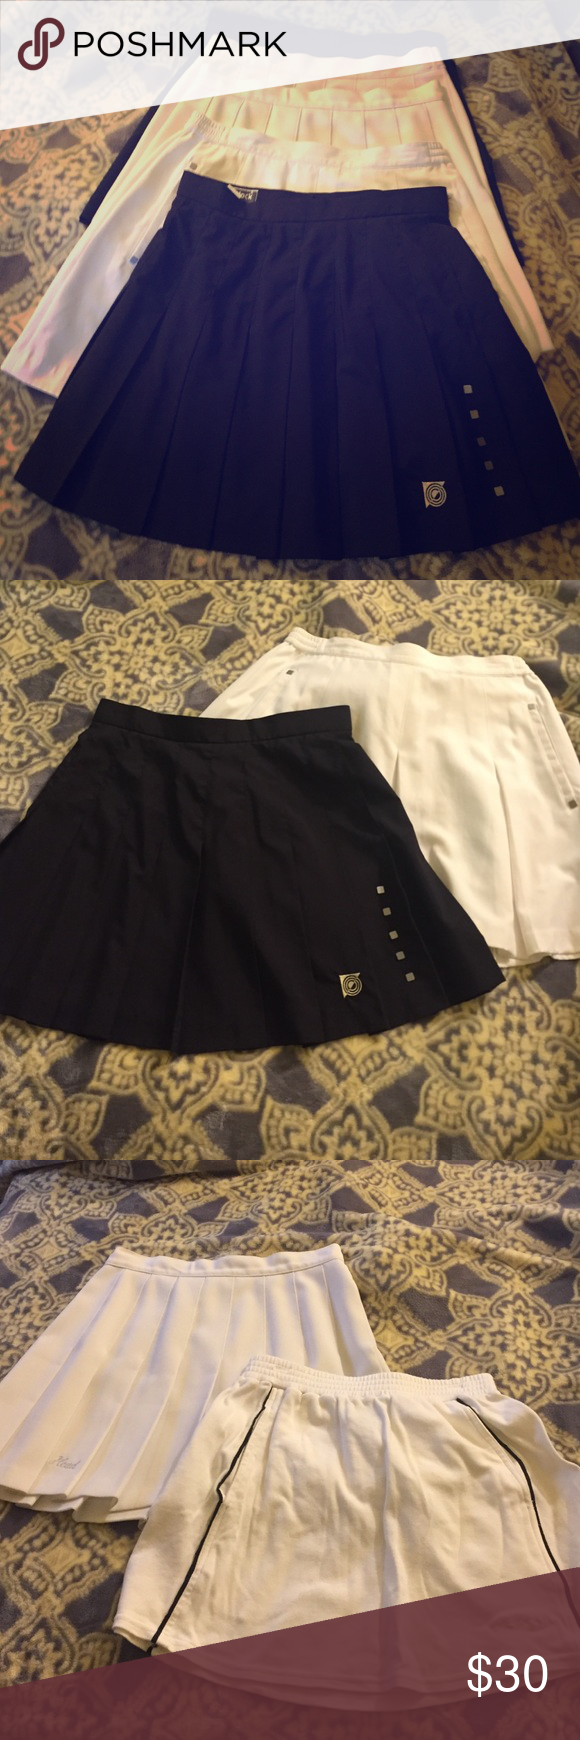 Bundle of 6 Tennis Skirts 2 Jamie Saddock 2 Cutt & Bucker 1 Head and 1 Kaim. Only damage is on the back of the white Cutt & Bucker otherwise in very good condition. Cutter & Buck Skirts Skirt Sets